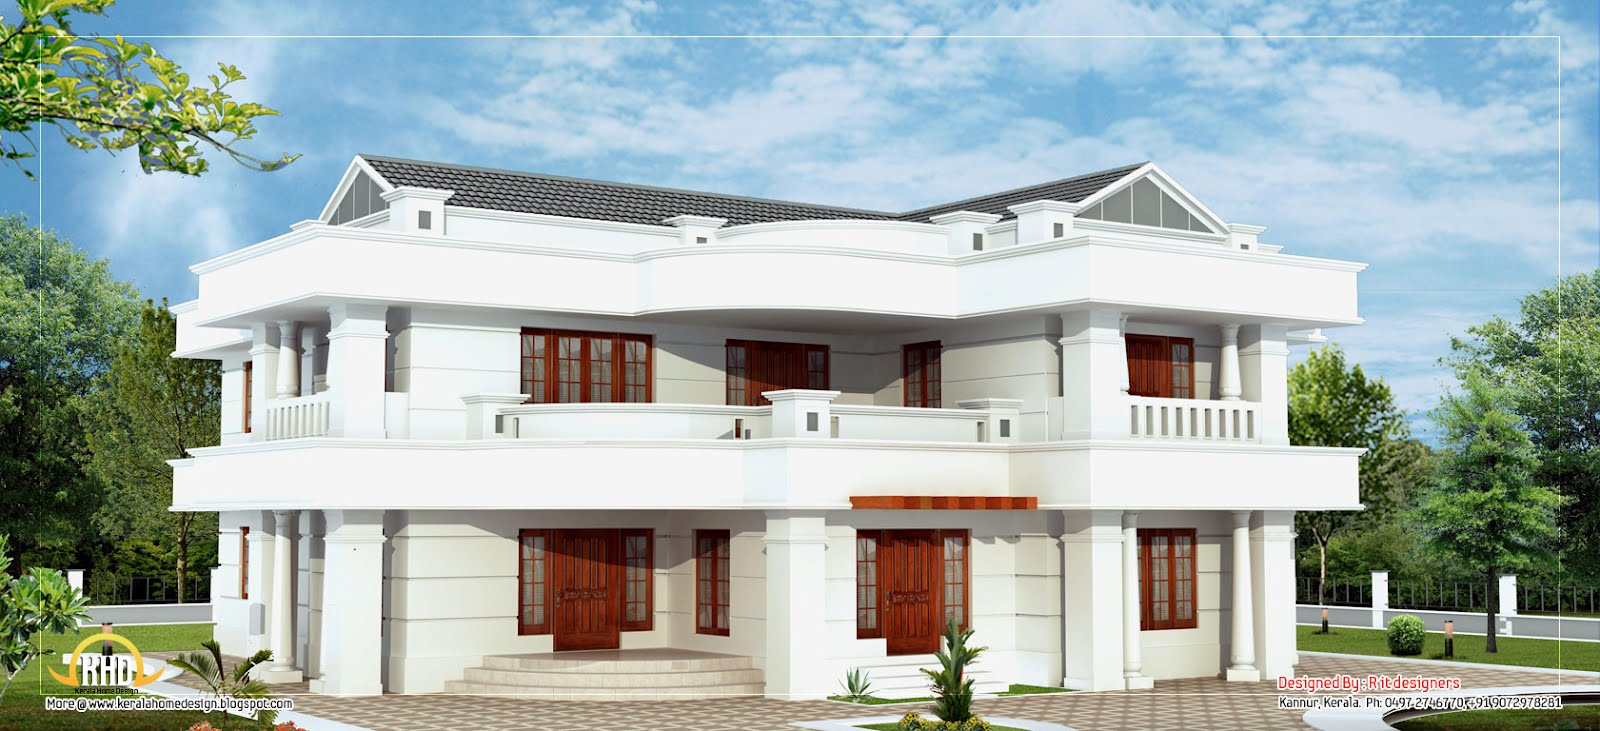 Beautiful 2 story house elevation 3665 sq ft home for Two storey house design with floor plan with elevation